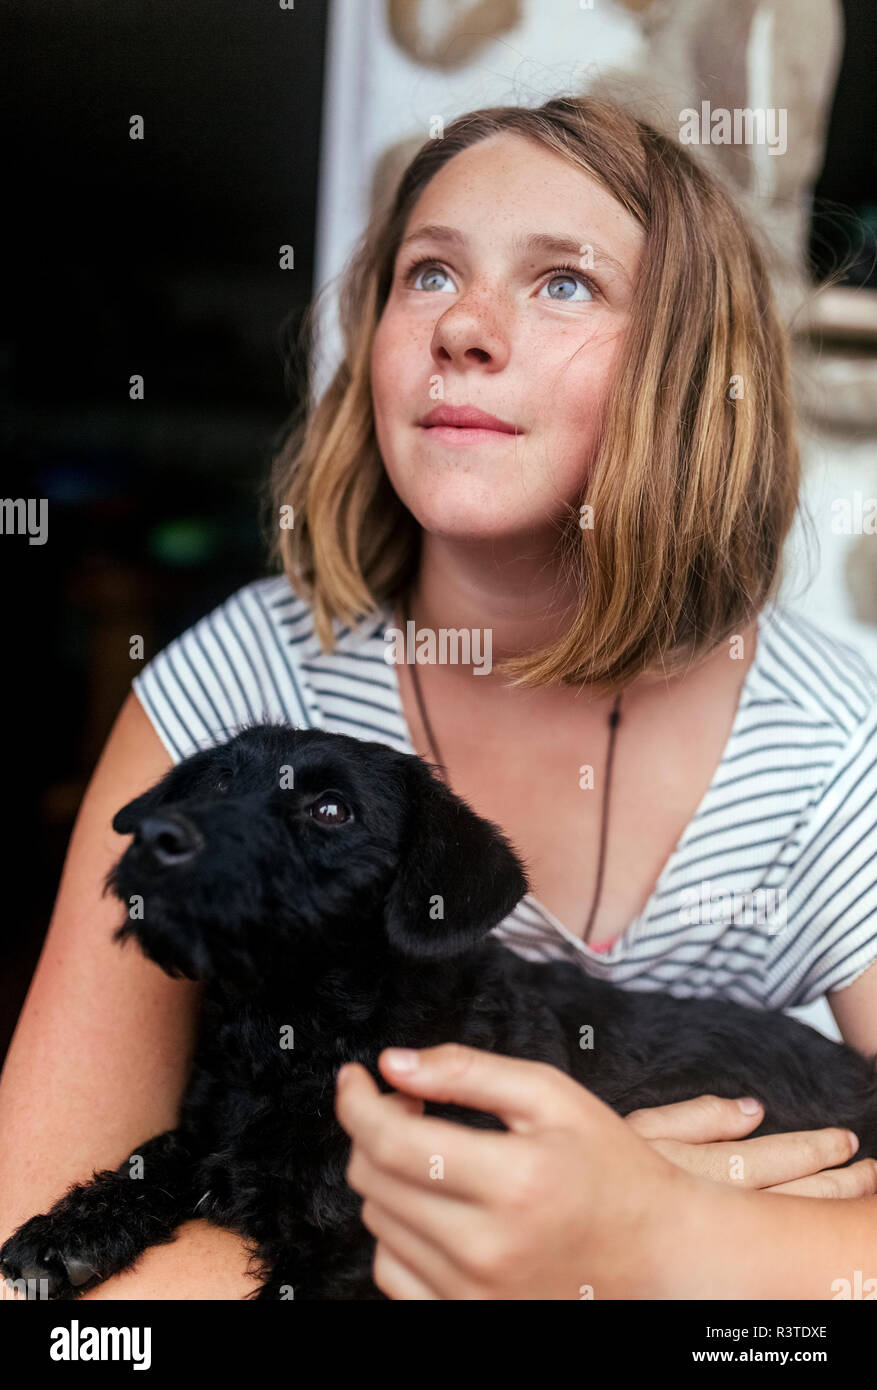 Portrait of freckled girl with black puppy in her arms looking up - Stock Image